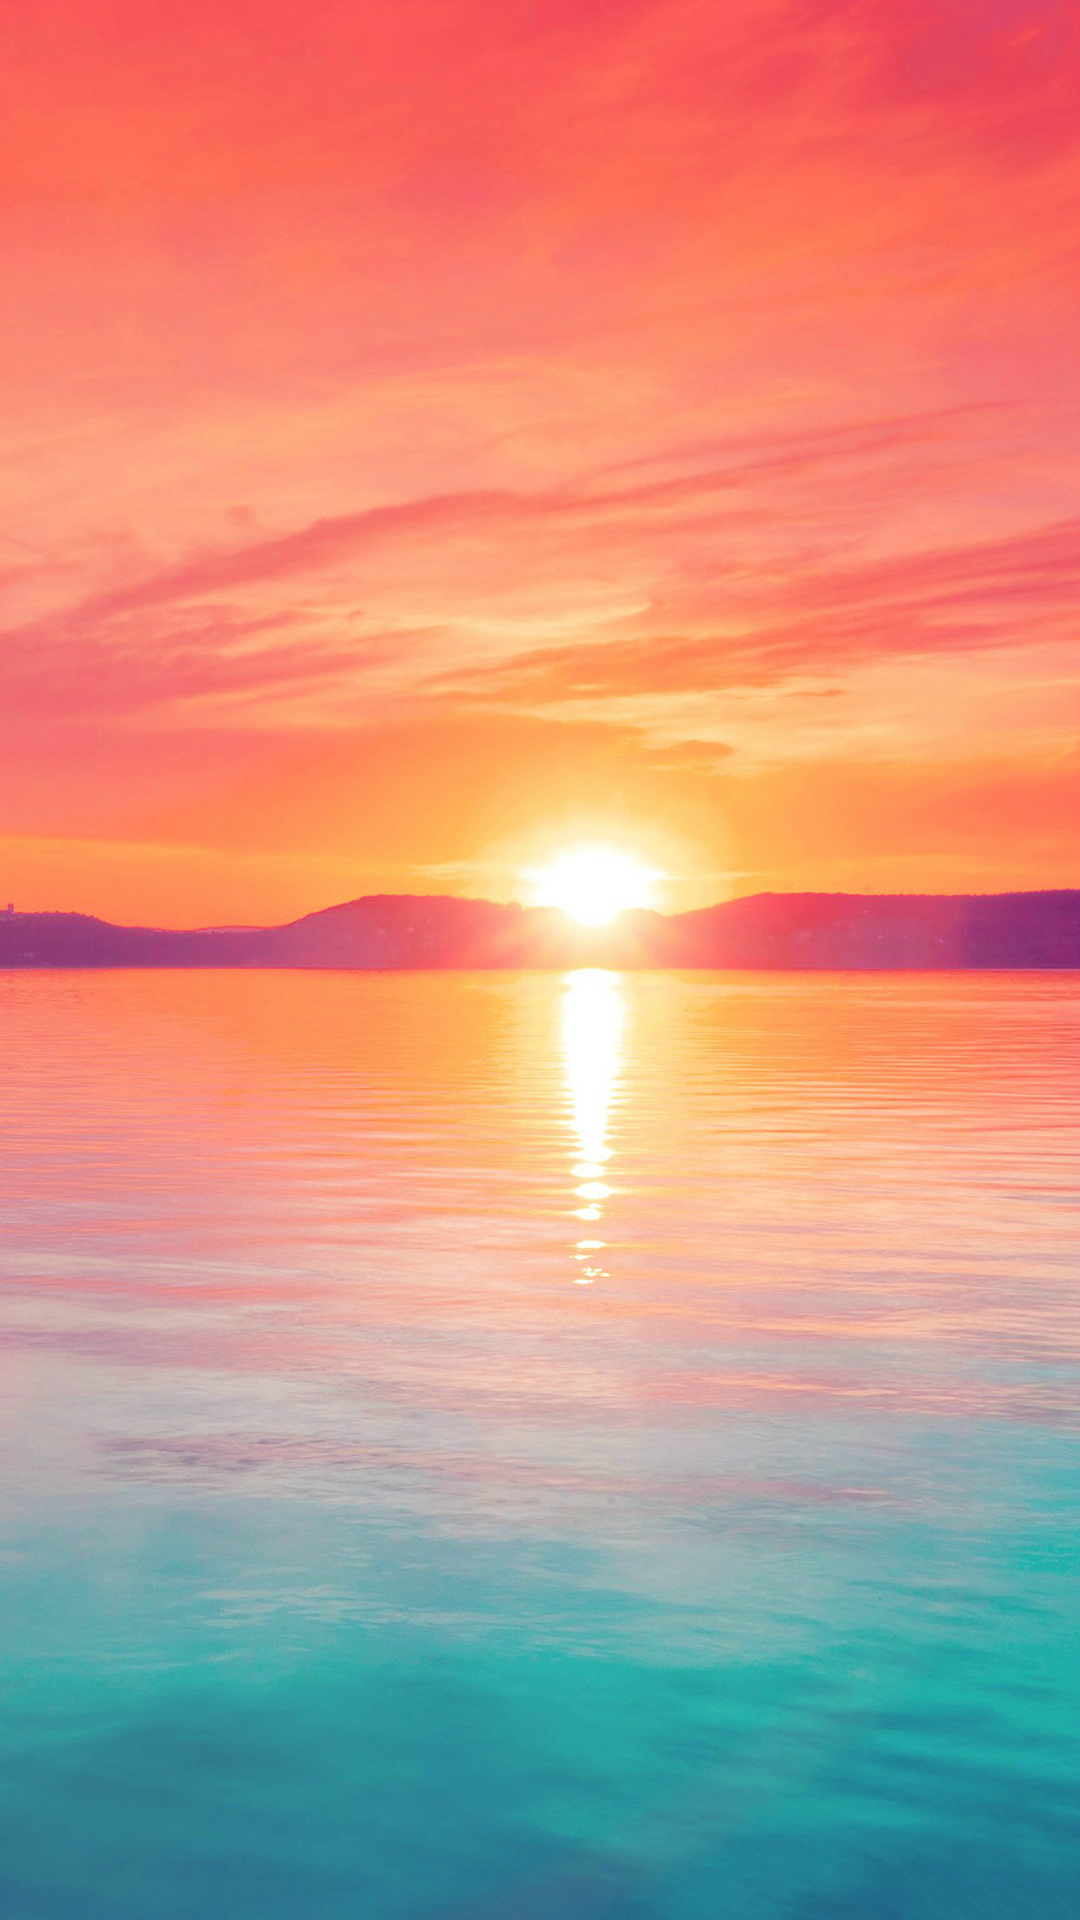 Sunset-Night-Lake-Water-Sky-Red-Flare-iPhone-6-wallpaper.